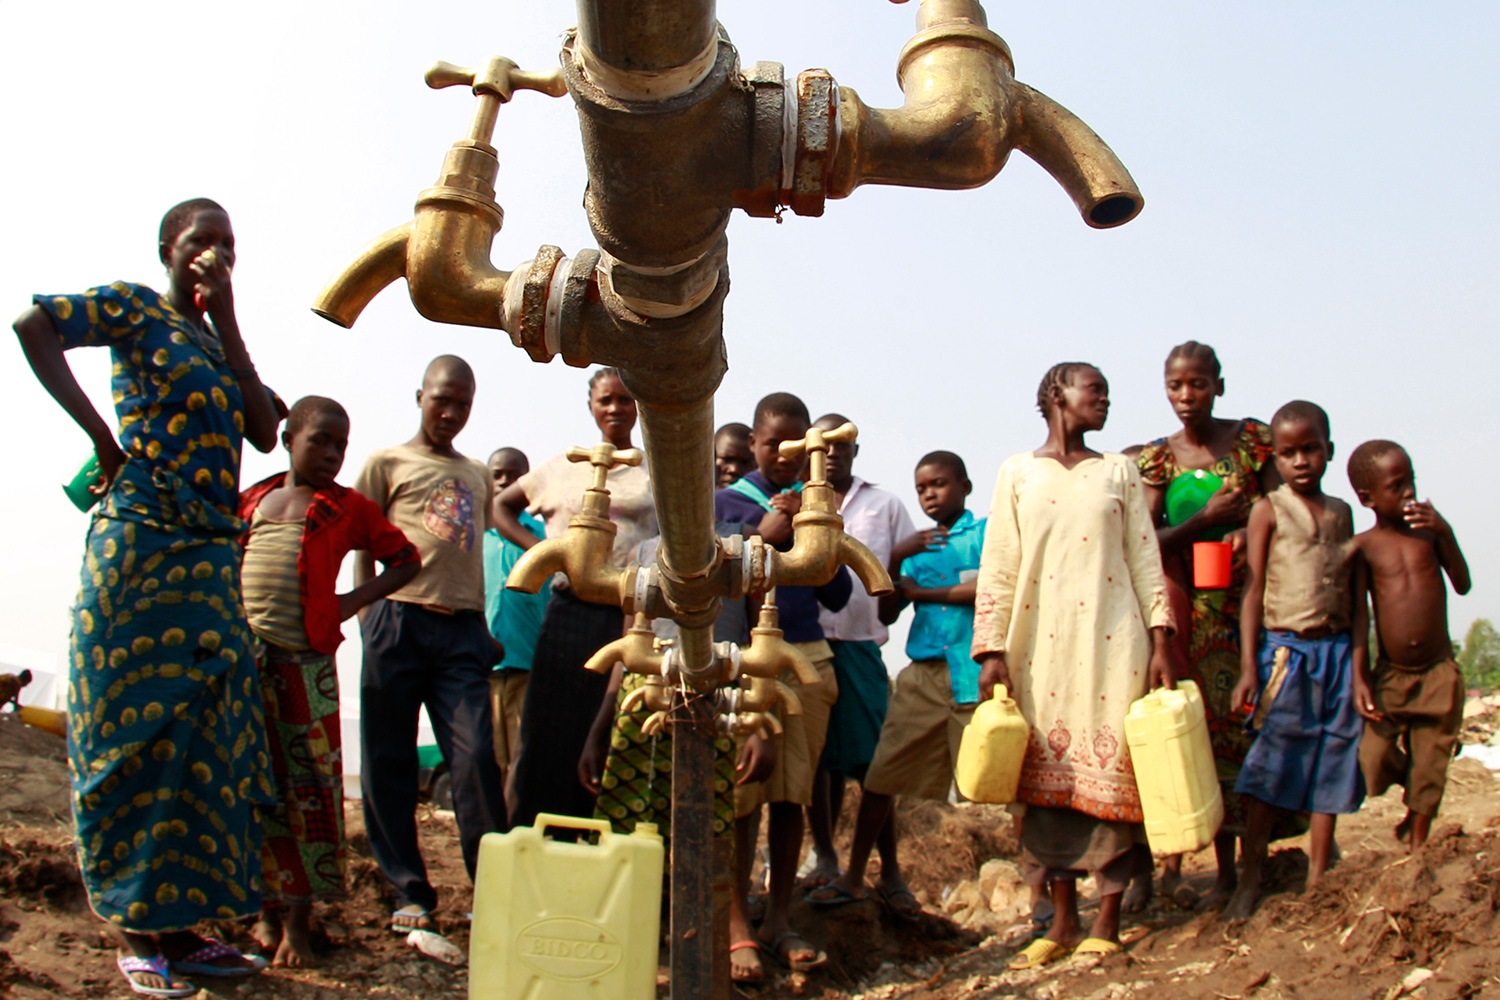 The photo shows a crowd of people around a metal water pipe with no water flowing.